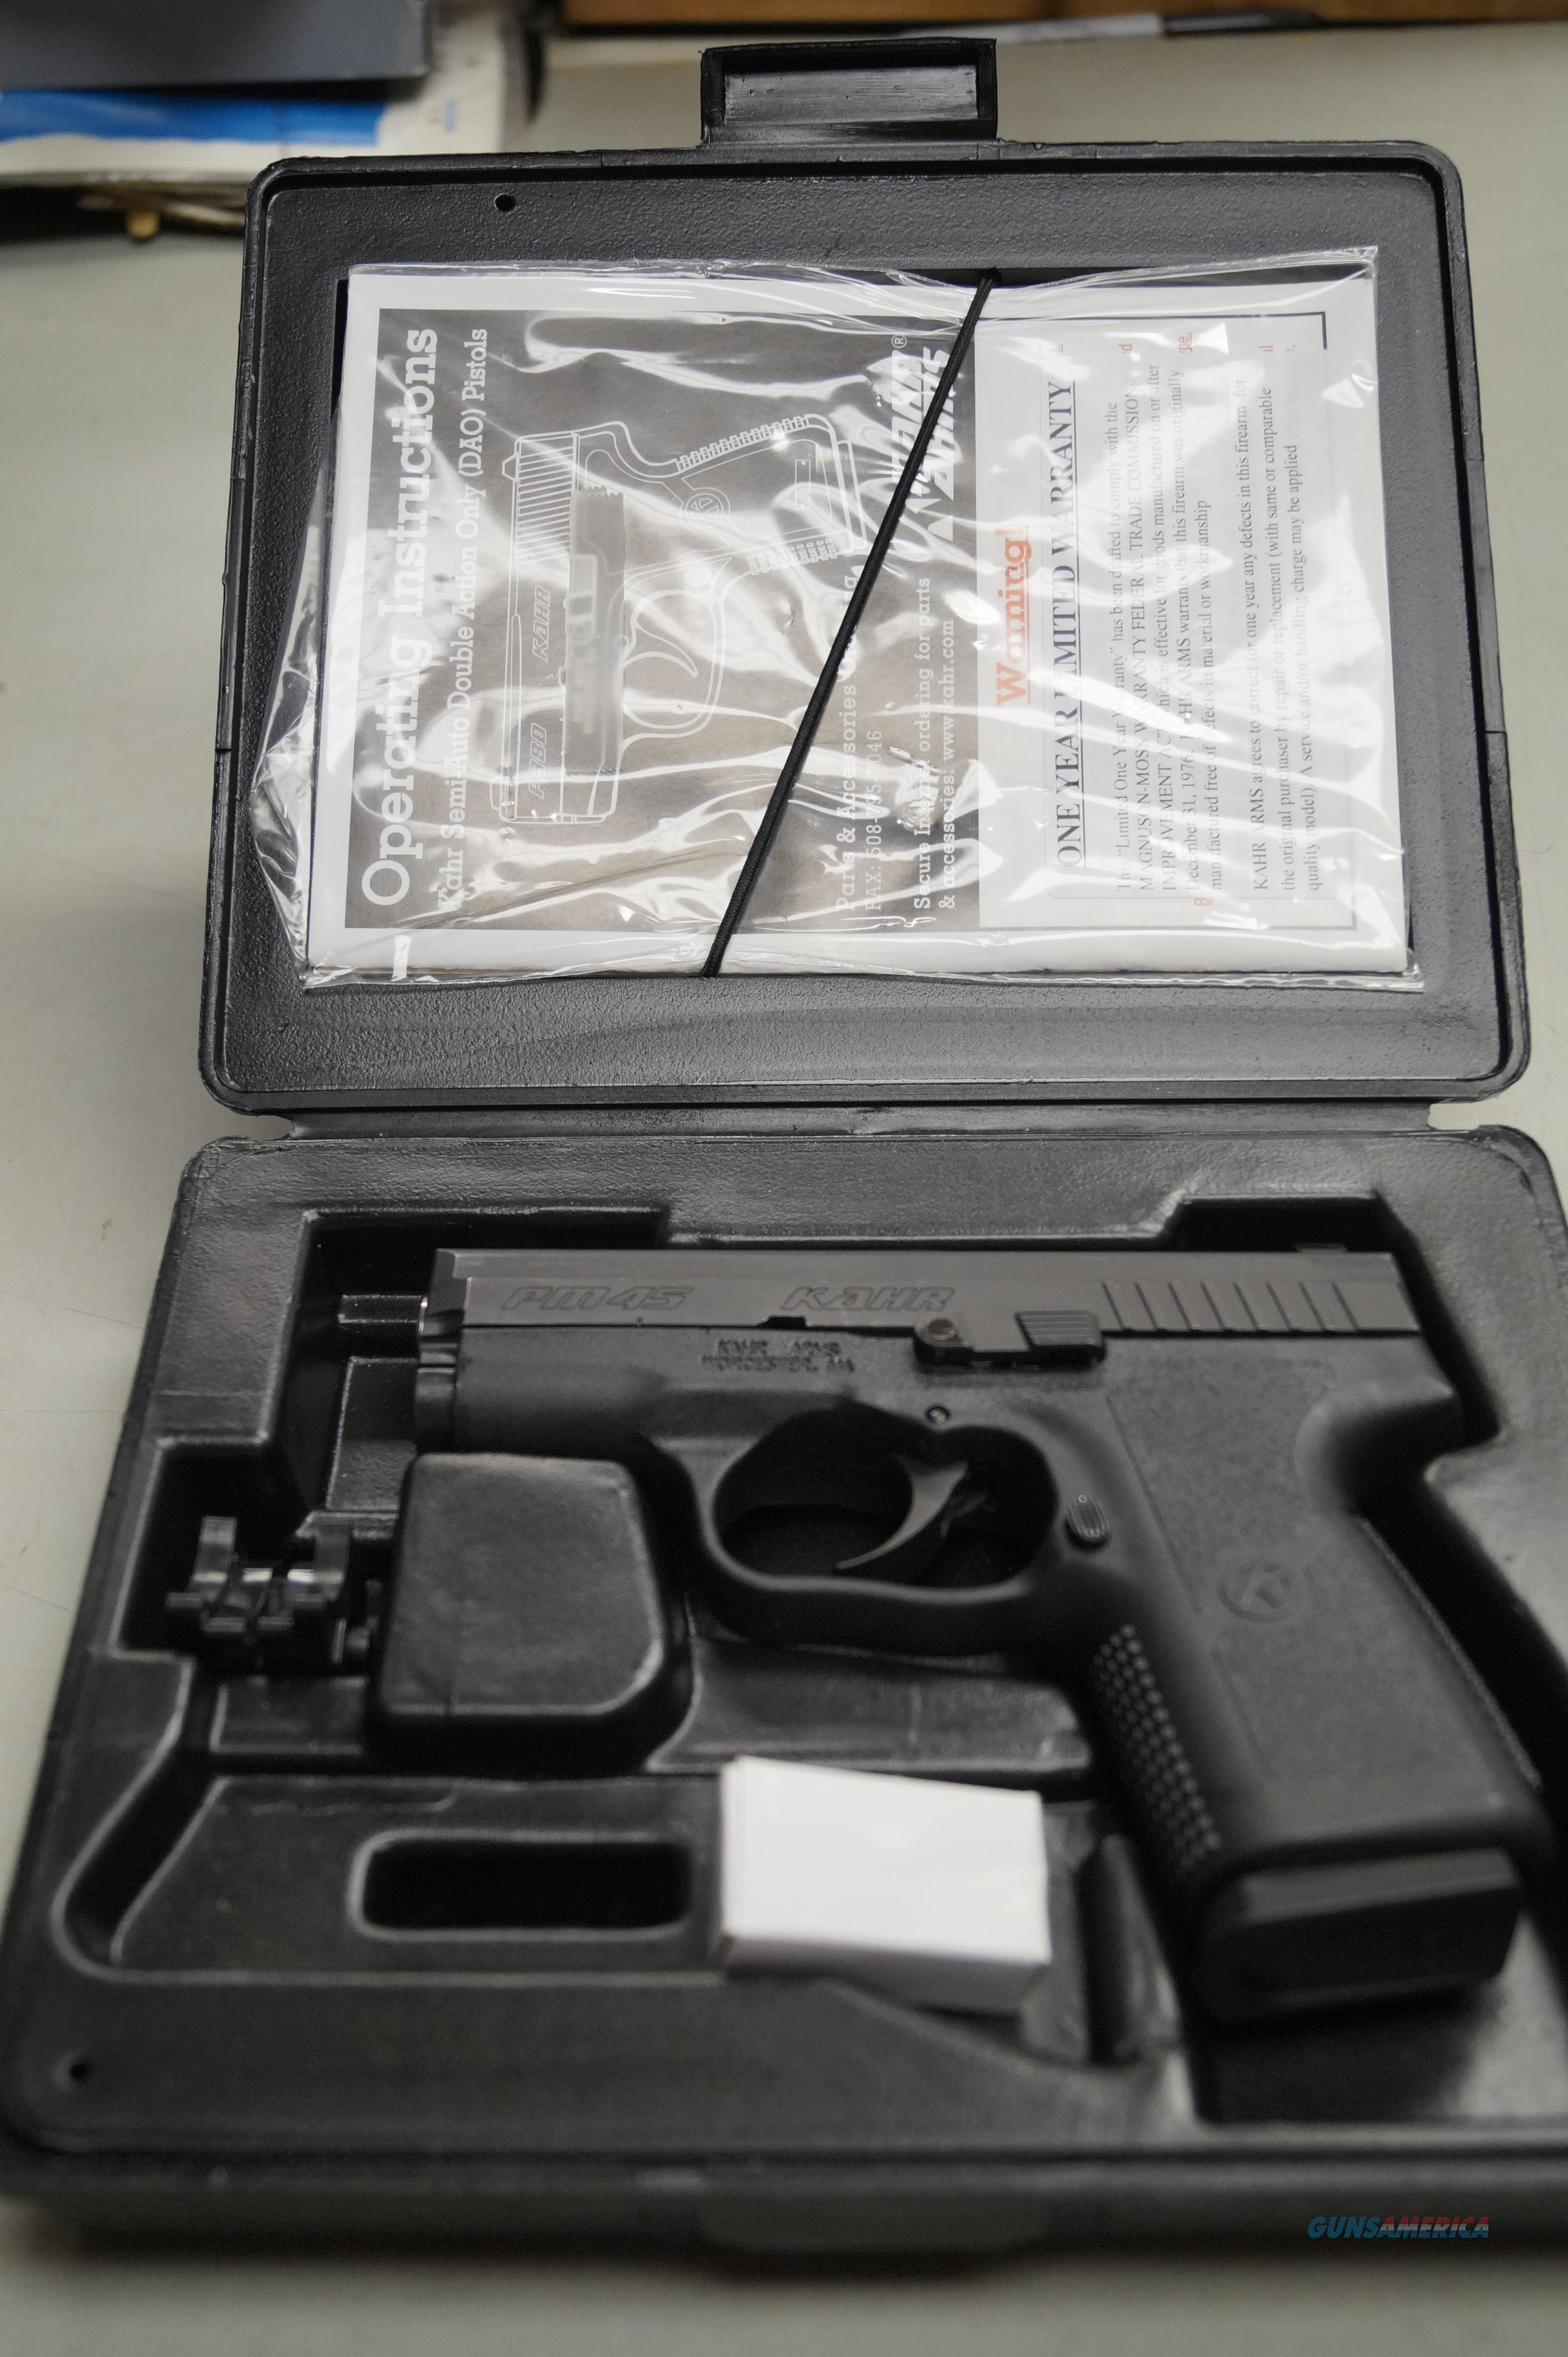 KAHR ARMS  KAHR PM 45  45 ACP STAINLESS STEEL BLUE PISTOL WITH BOX AND ALL PAPERS  Guns > Pistols > Kahr Pistols